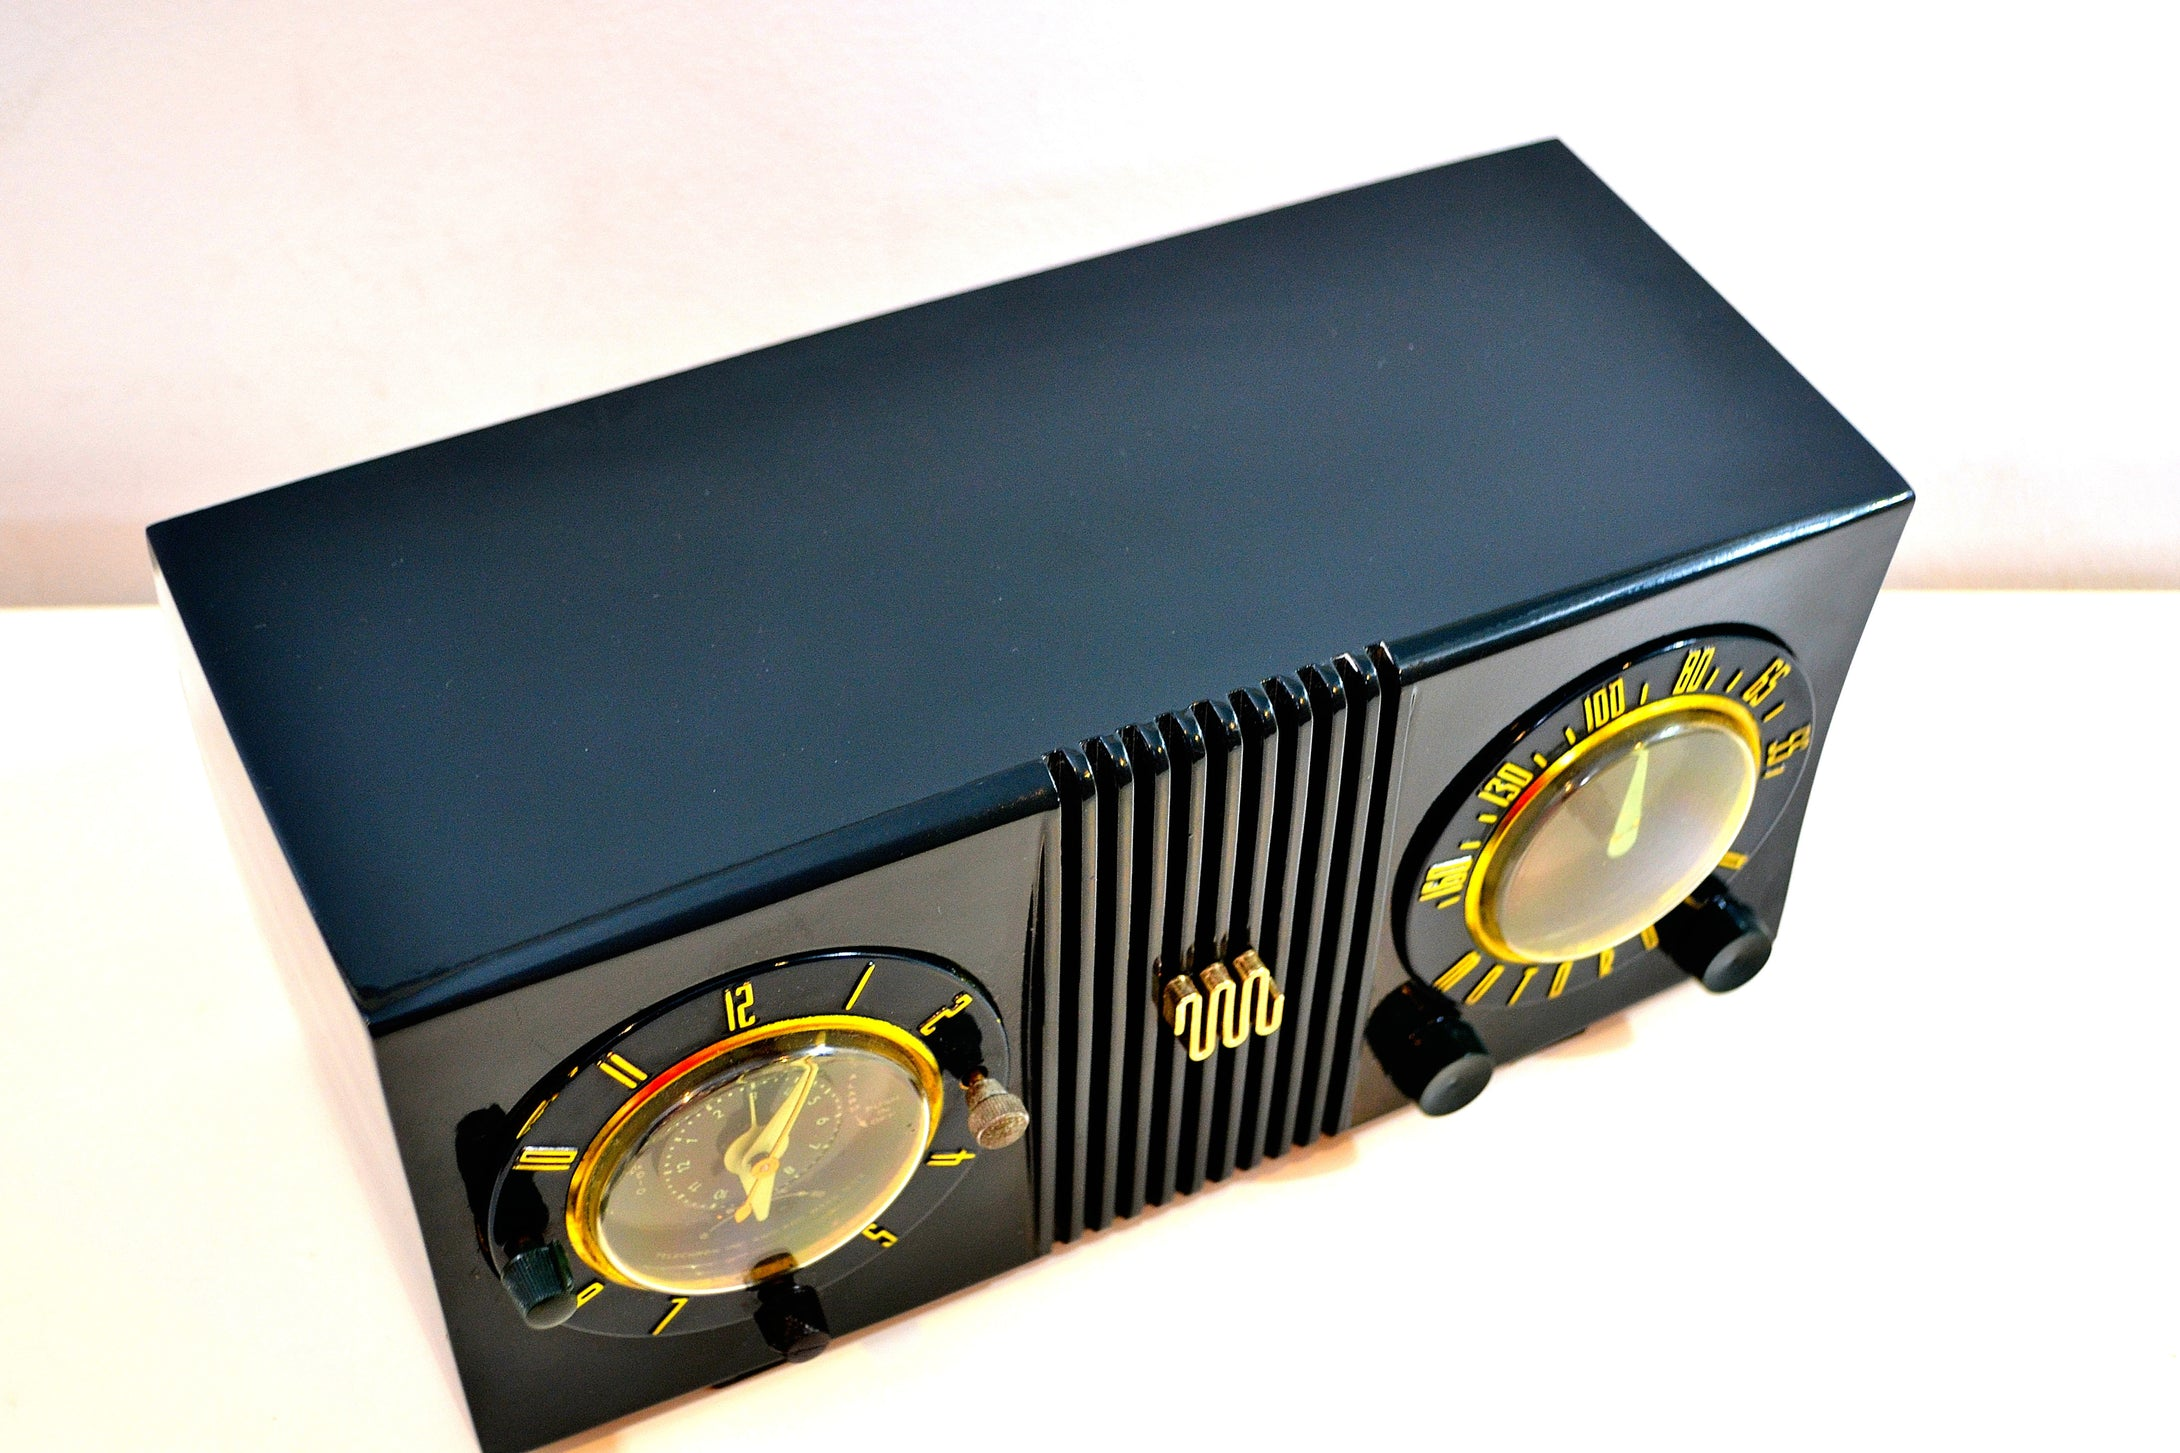 SOLD! - Aug 29, 2019 - Forest Green 1950 Motorola Model 5C4 Tube AM Clock Radio Works Great High Quality Construction! - [product_type} - Motorola - Retro Radio Farm